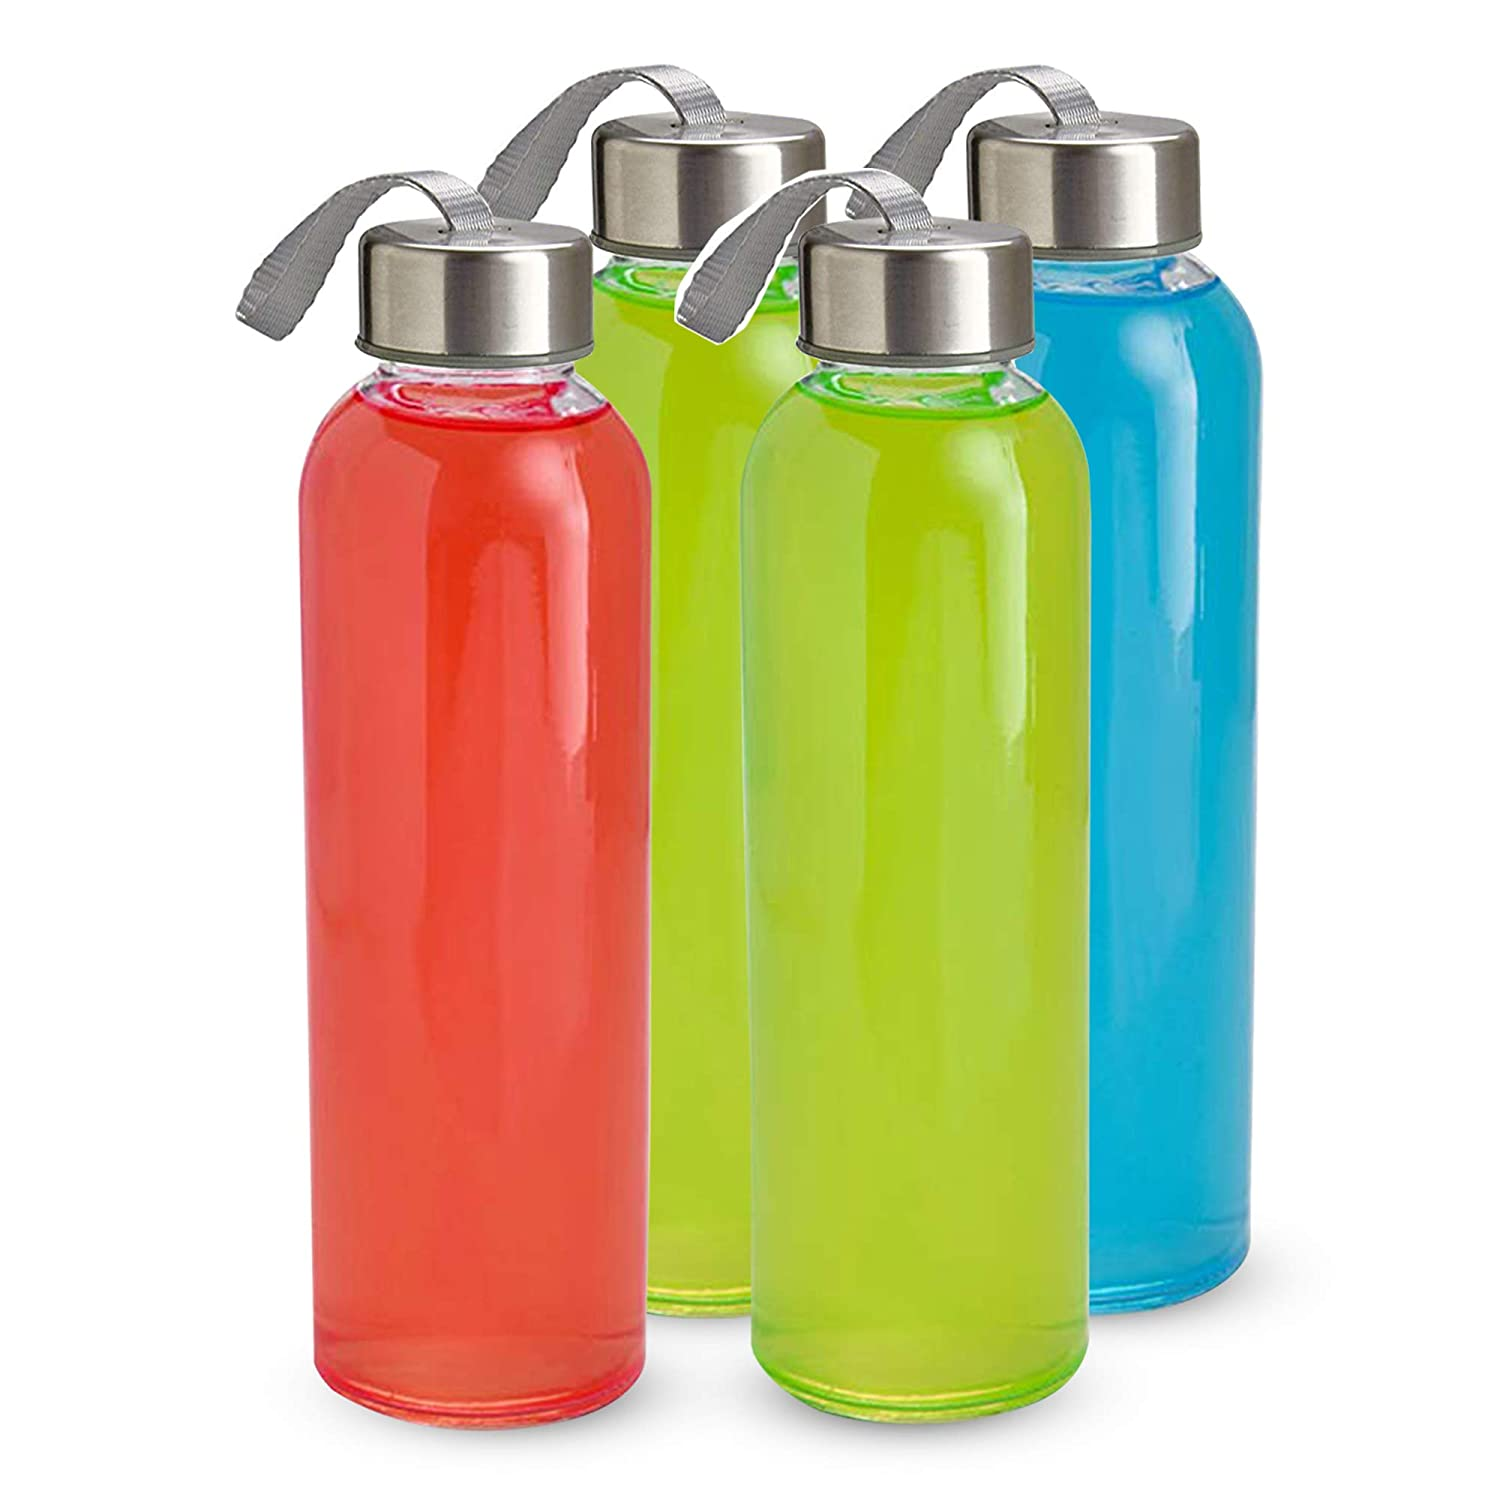 Smoothie Kitchen Lux Glass Water Bottles 18oz 4 Pack PVC and BPA Free Portable Carrying Loops Juicer and Beverage Glasses Airtight Screw Top Lids Nylon Protective Sleeves Water Lead